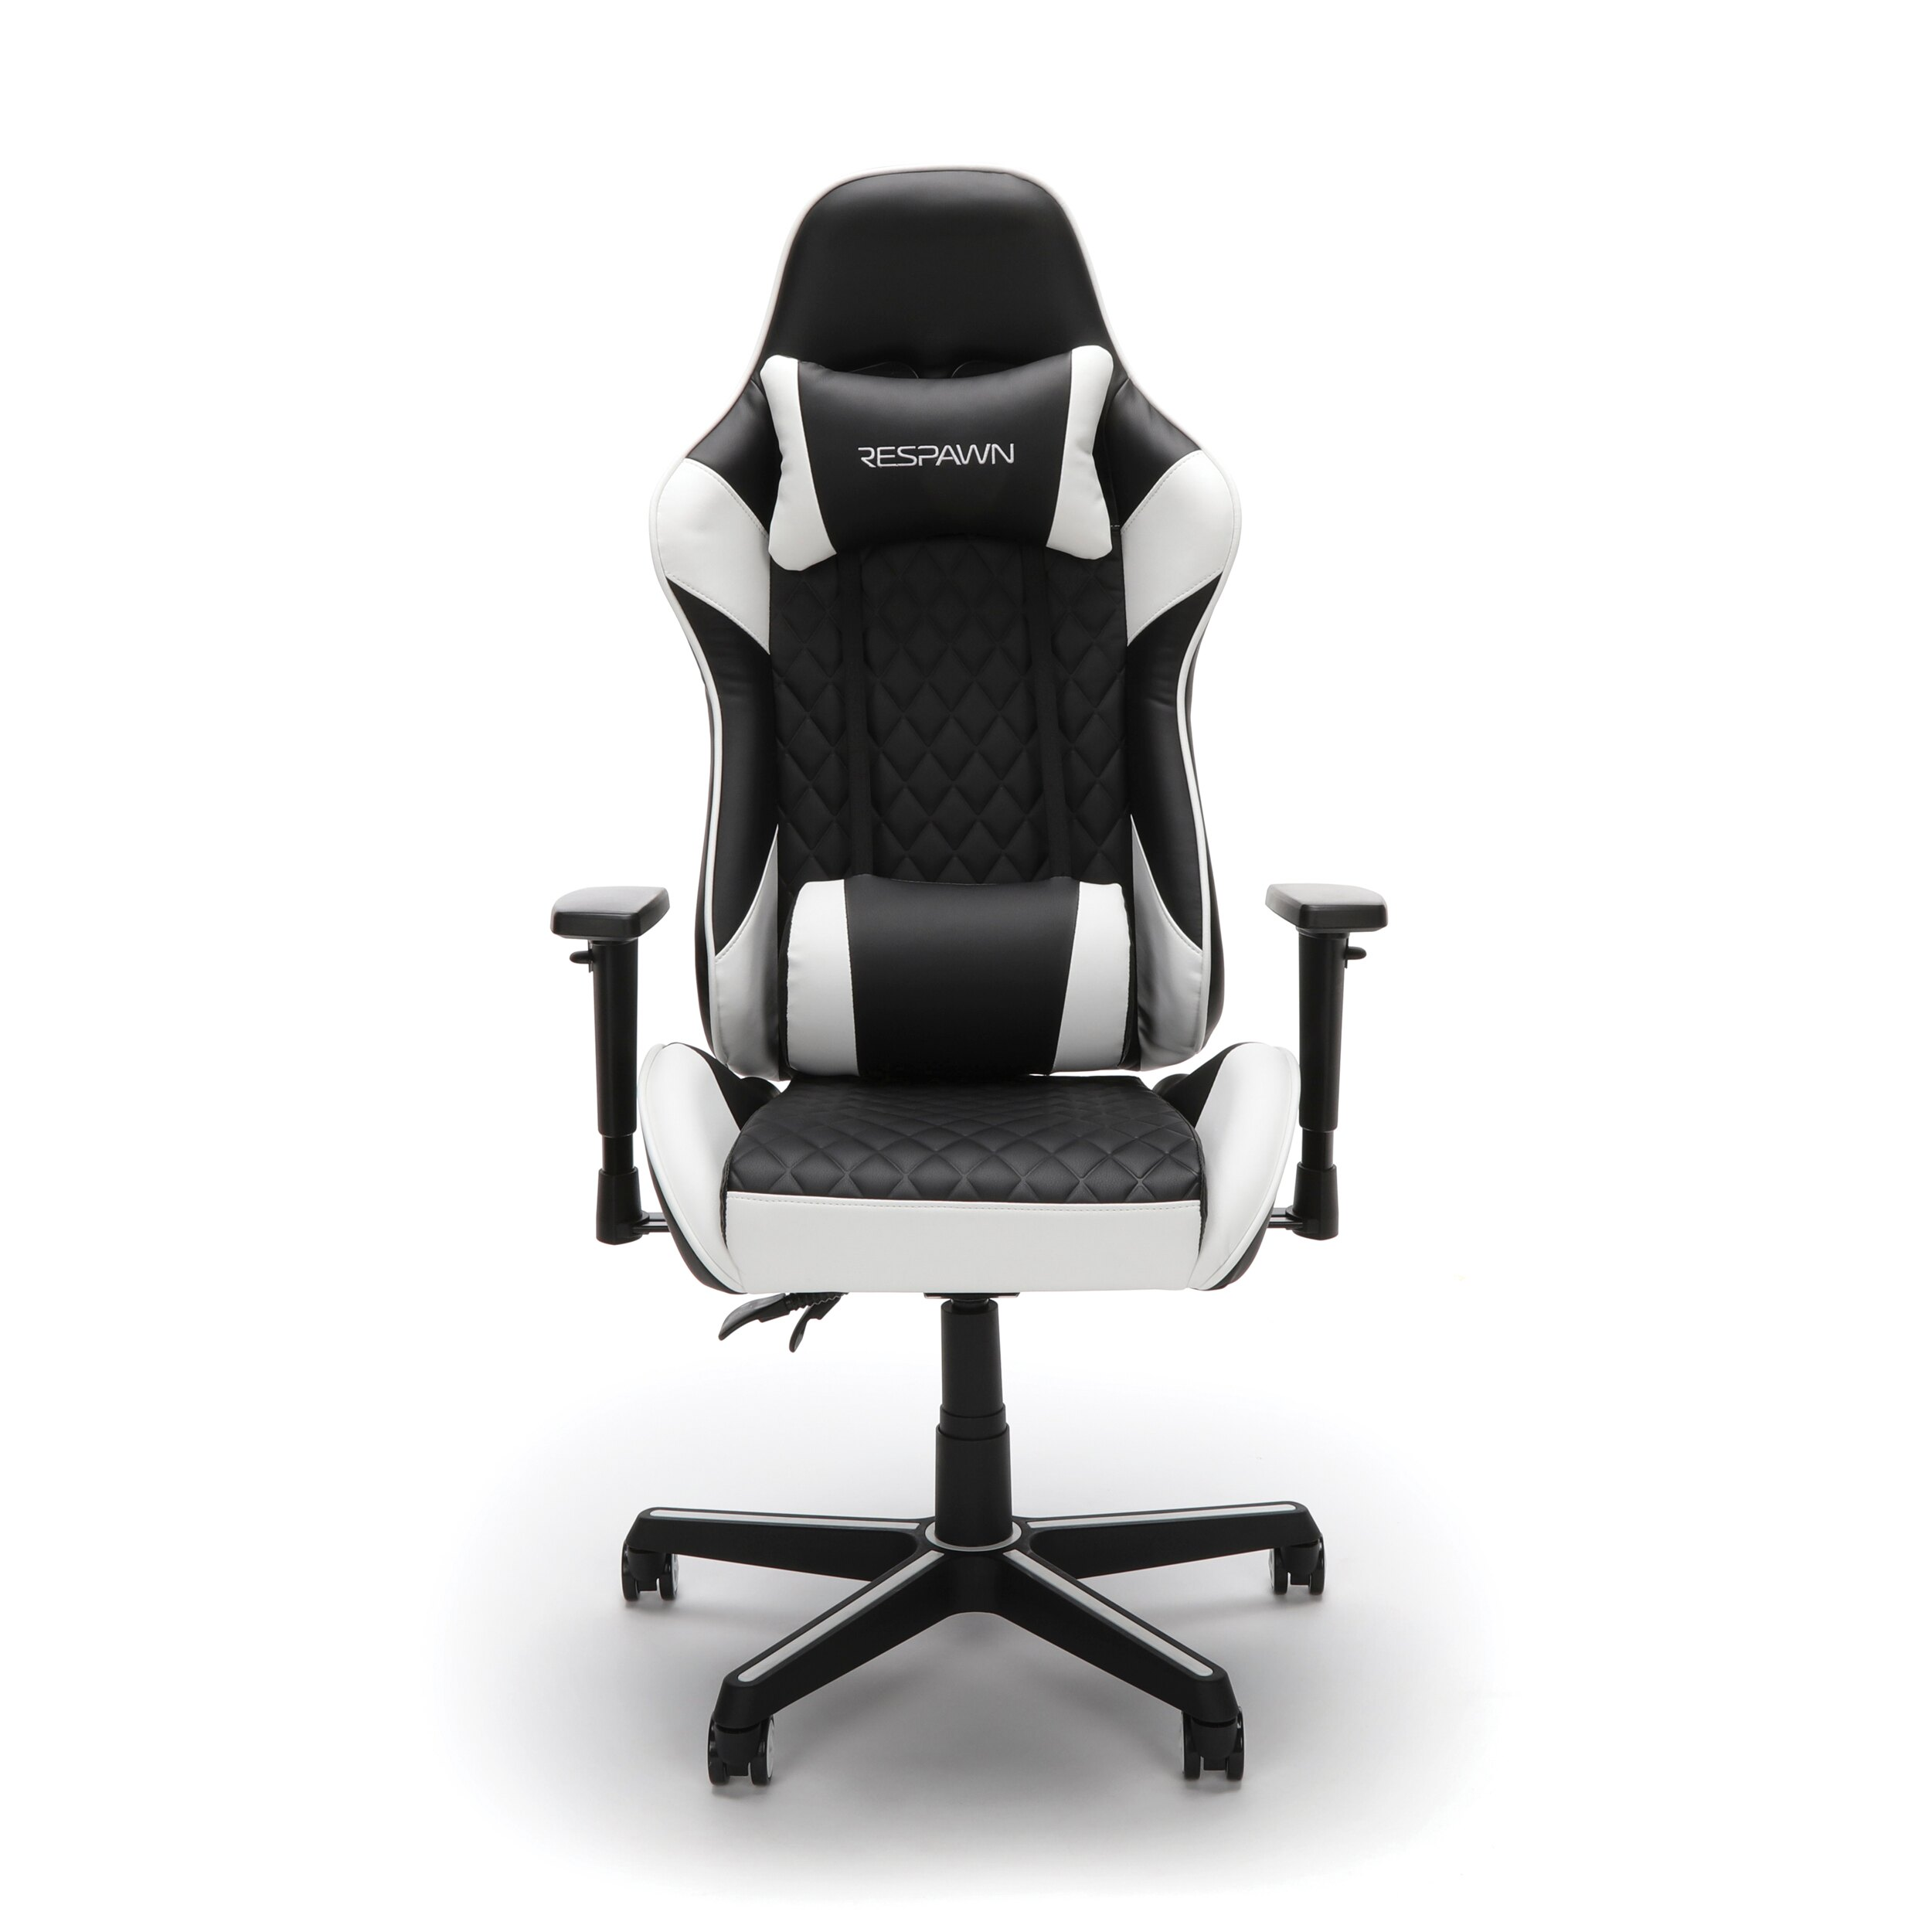 Office Essentials: RESPAWN-100 Racing Style Gaming Chair